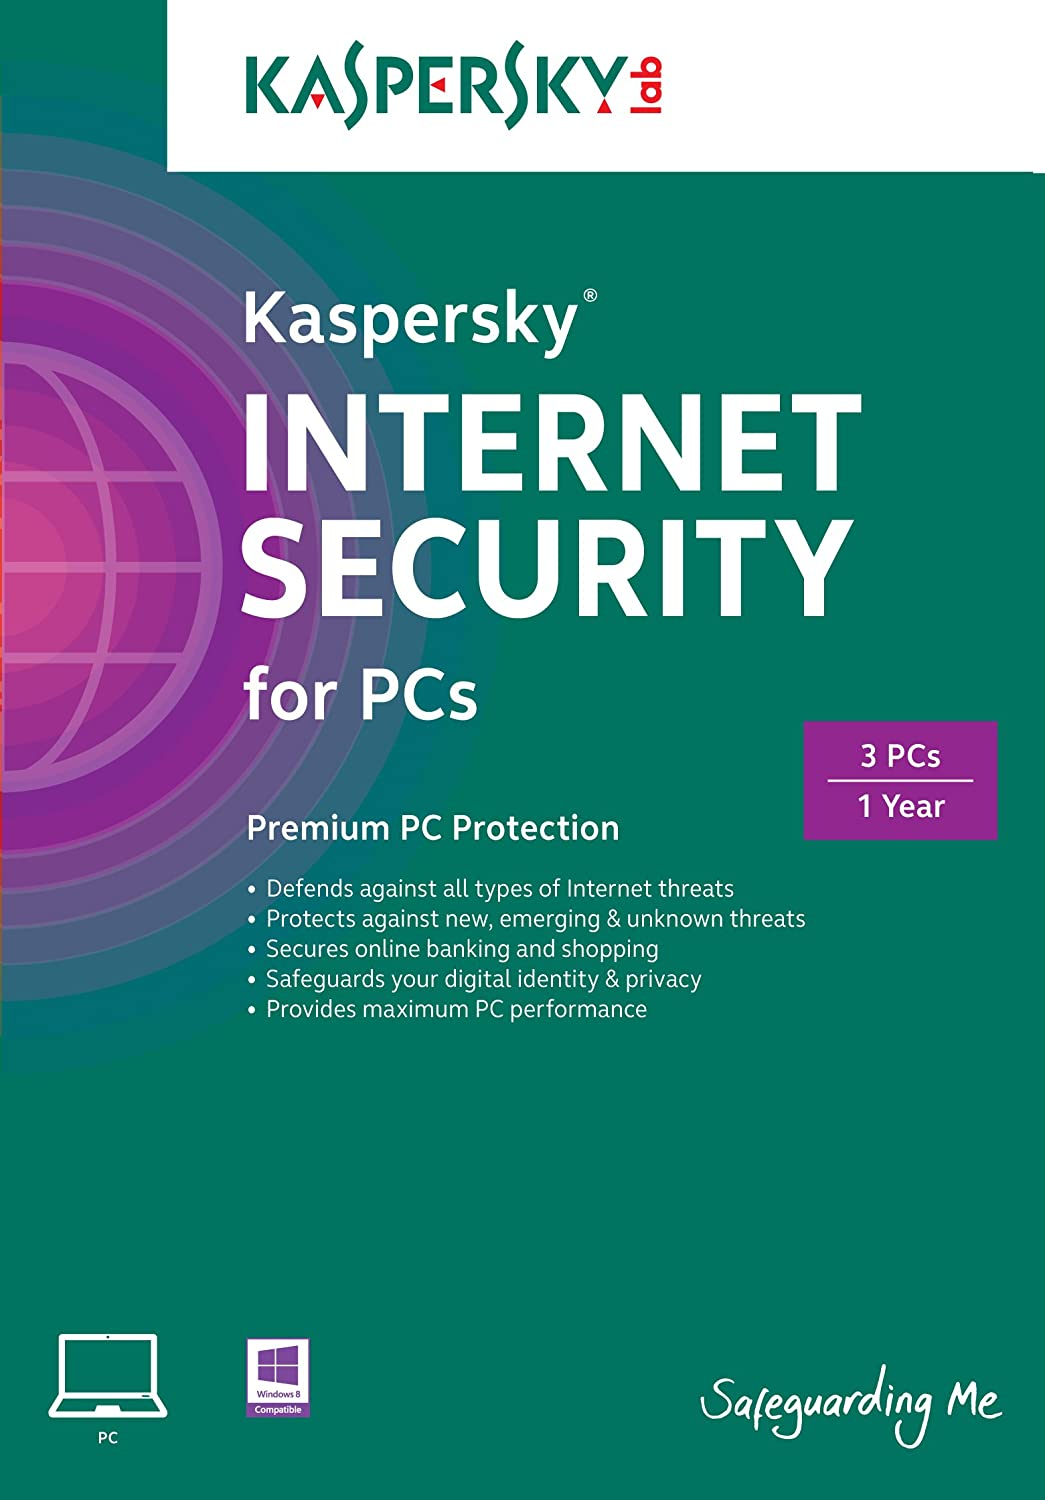 العربية ▌ Kaspersky Internet Security